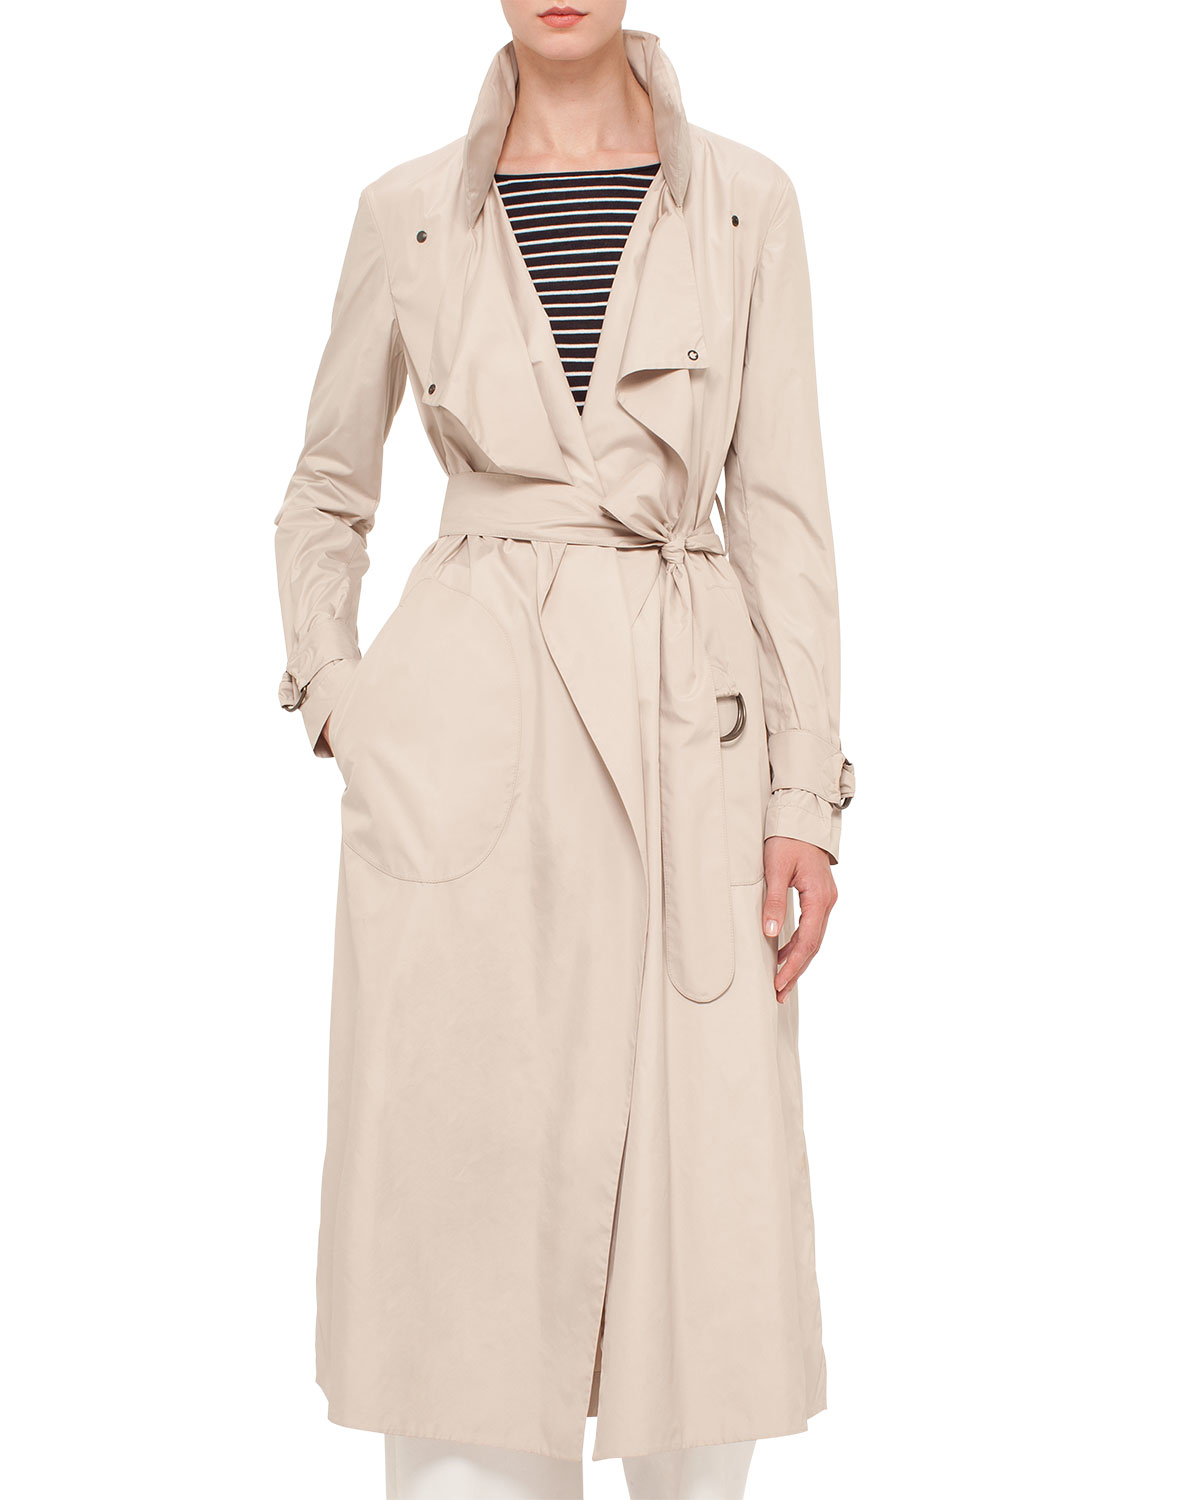 Original Akris belted trrench Store Cheap Price Clearance Clearance 1cIqcsQG